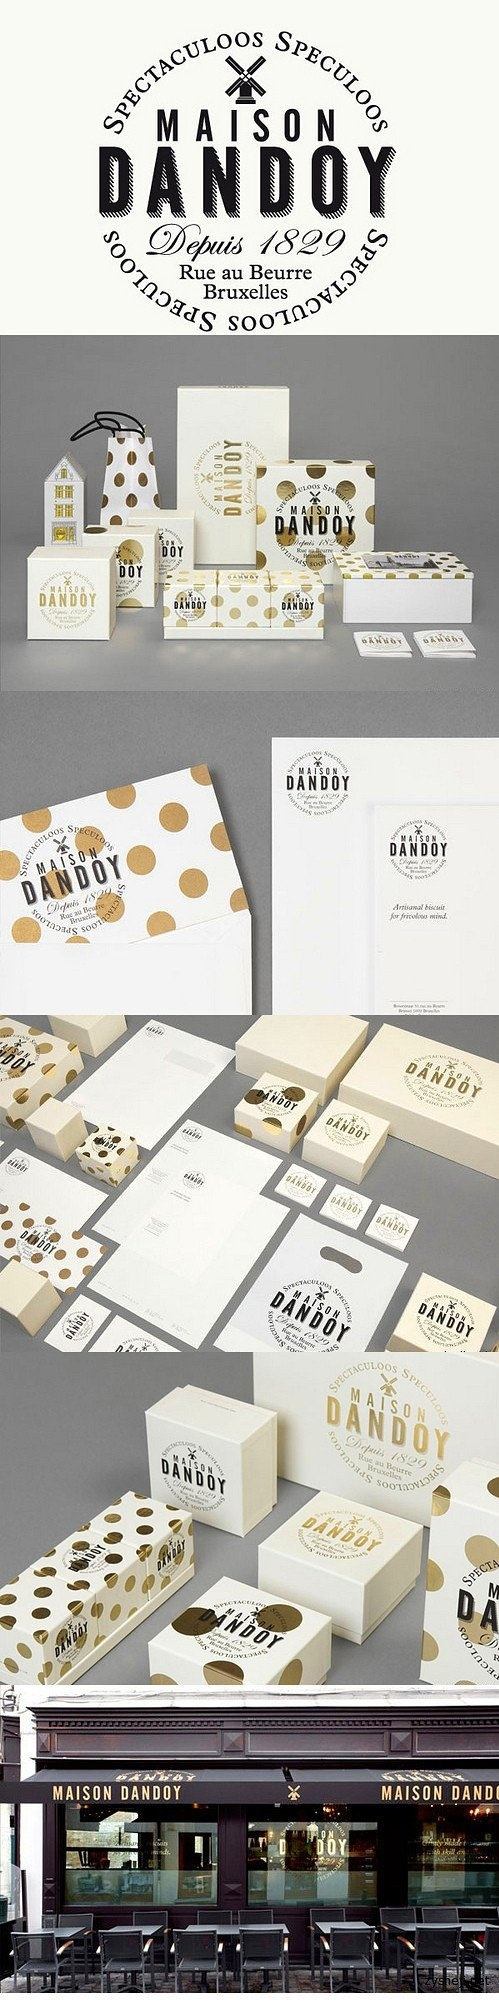 Maison Dandoy I'm seeing spots #identity #packaging #branding. PD